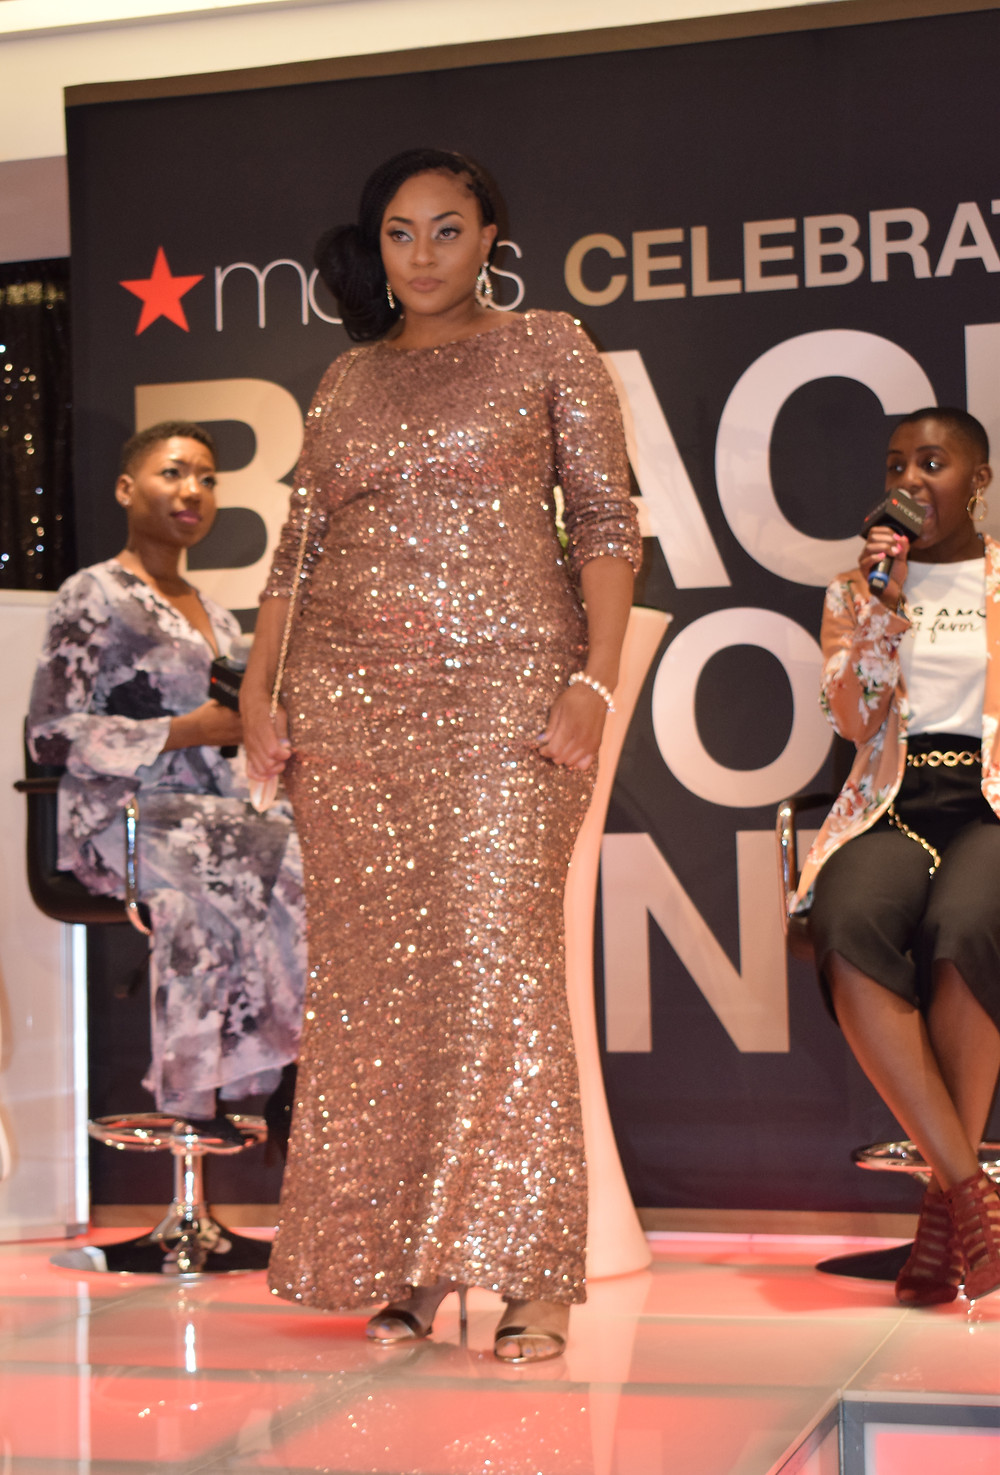 Macy's Black History Month Celebration in Atlanta at Lenox Mall; Brittany Boykin Fashion Inspired by Michelle Obama